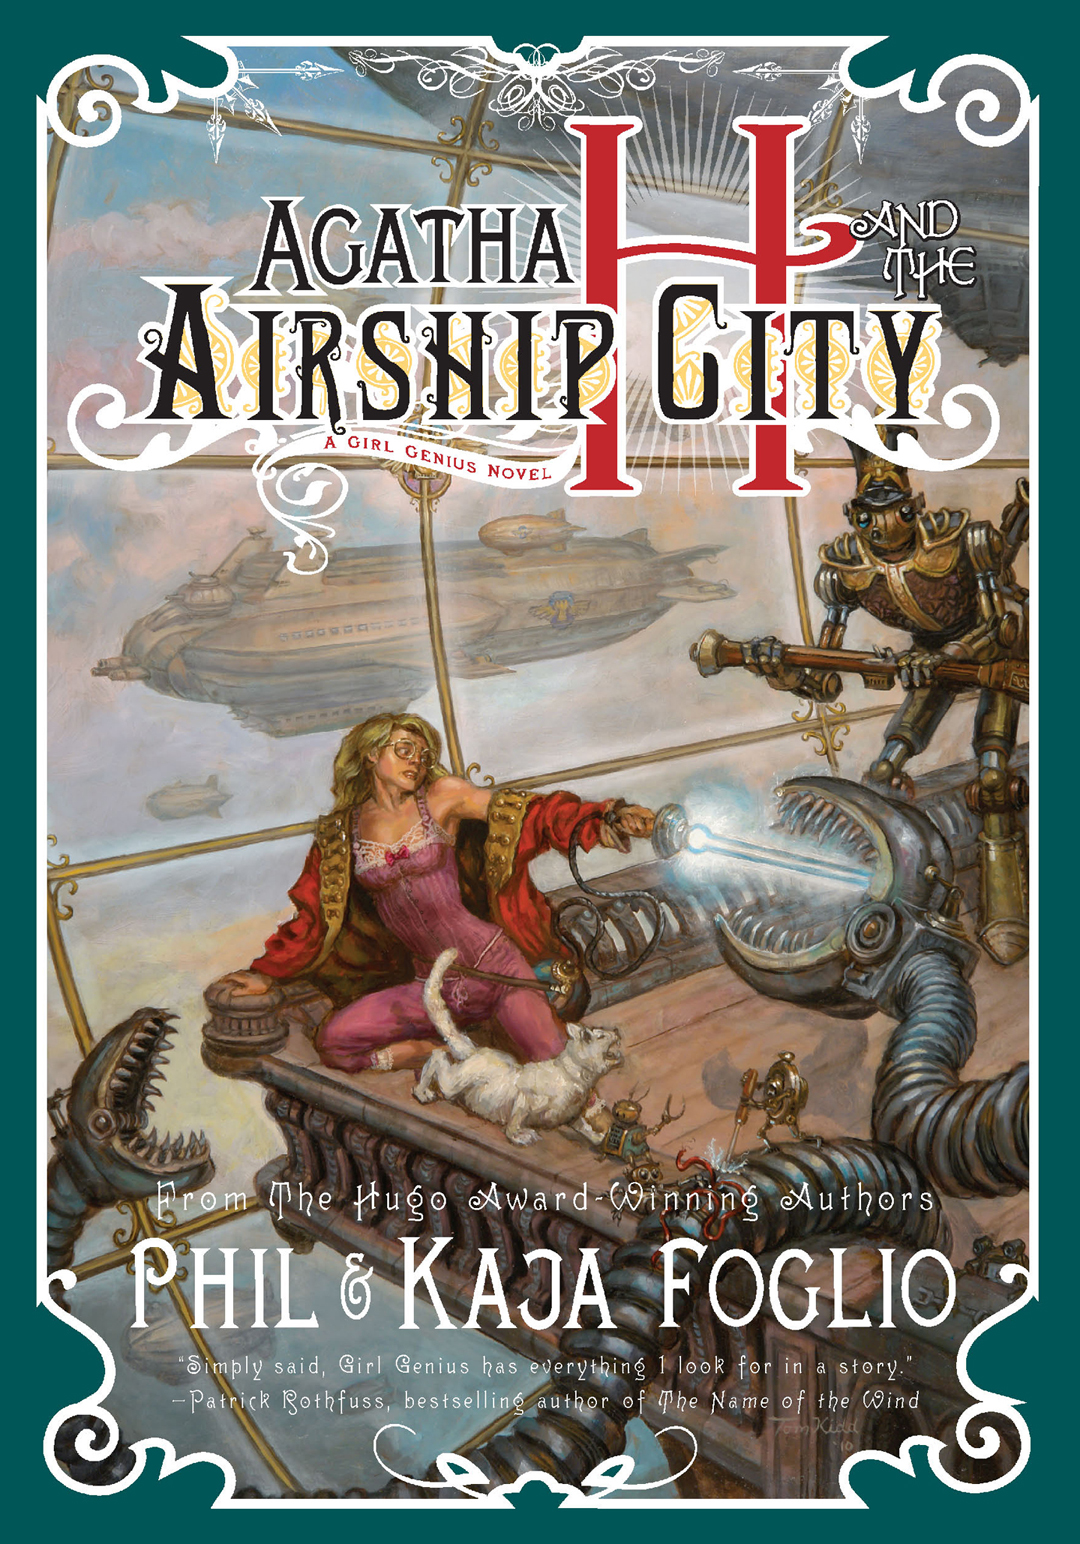 Cover of the novel 'Agatha H and the Clockwork City.'